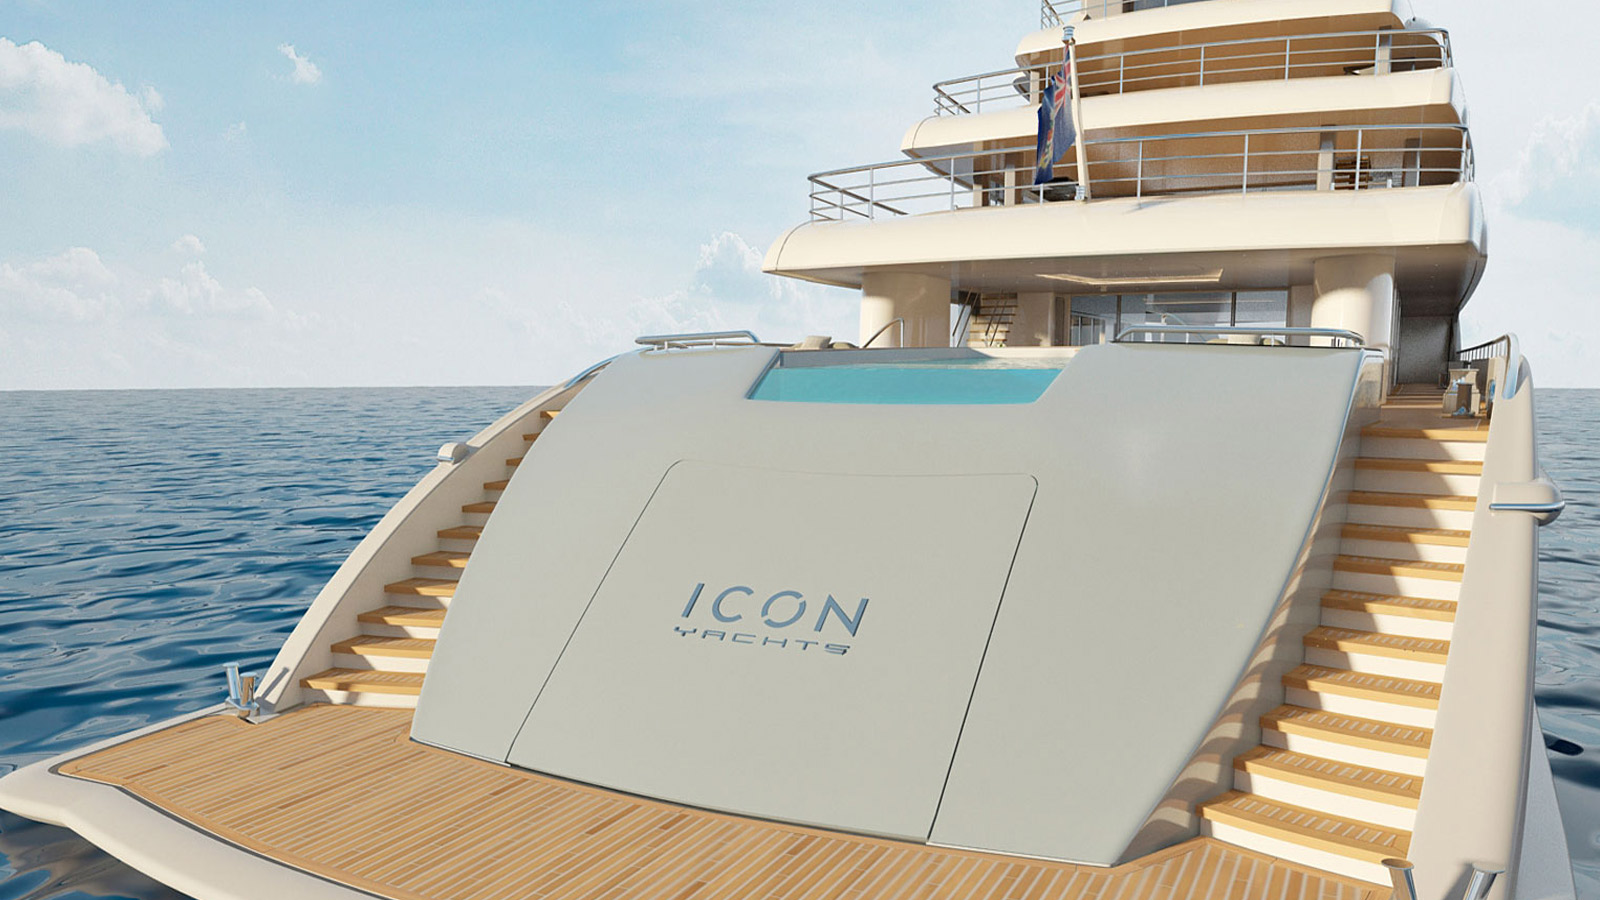 Яхта ICON 280 (new built) - фото 7 из 24